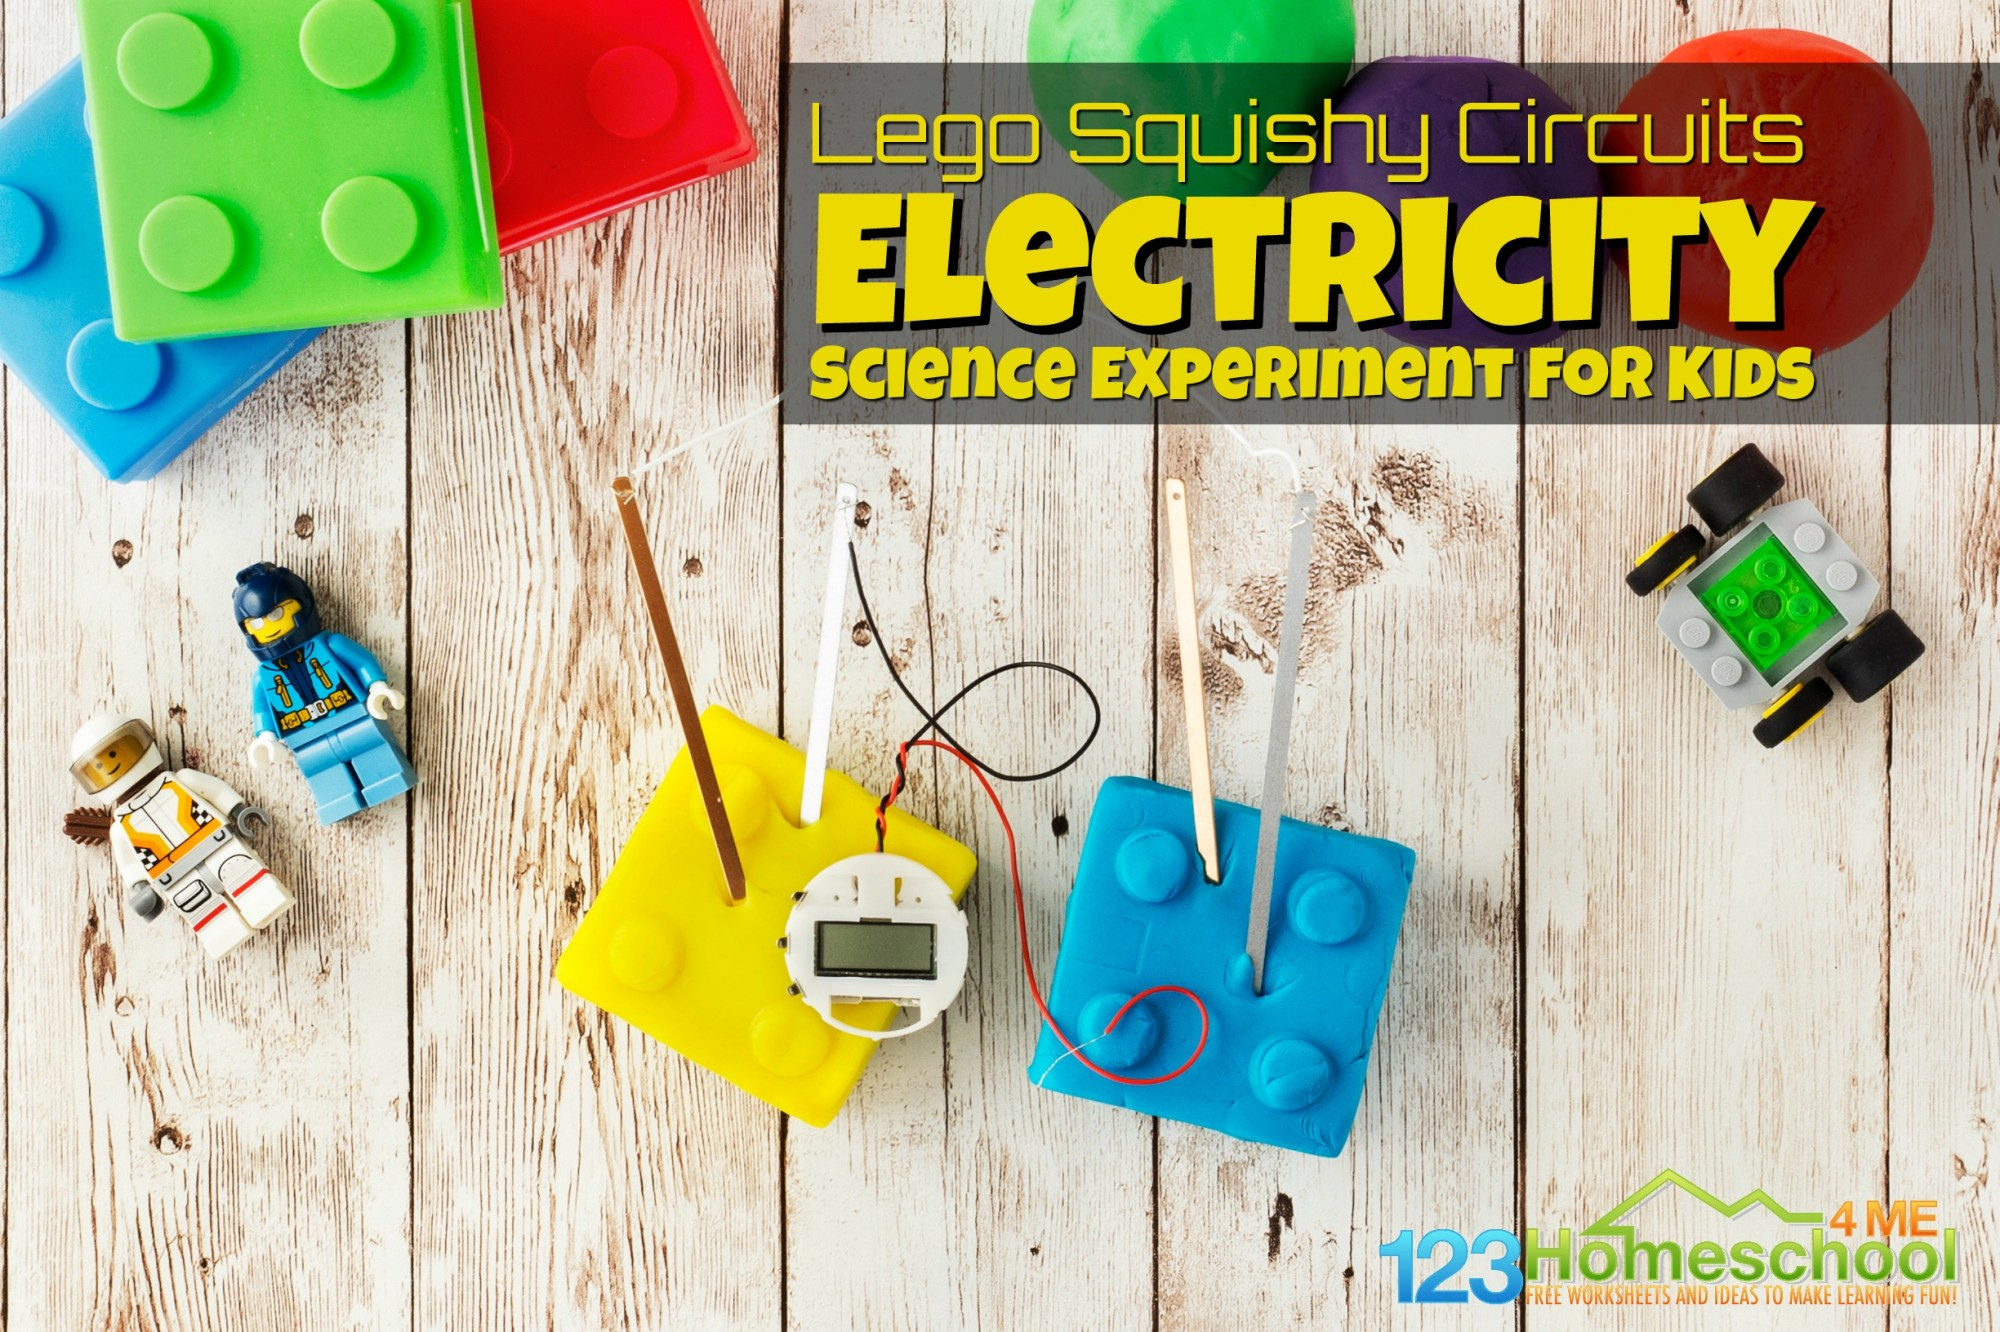 hight resolution of Lego Squishy Circuits Electricity Science Experiment for Kids